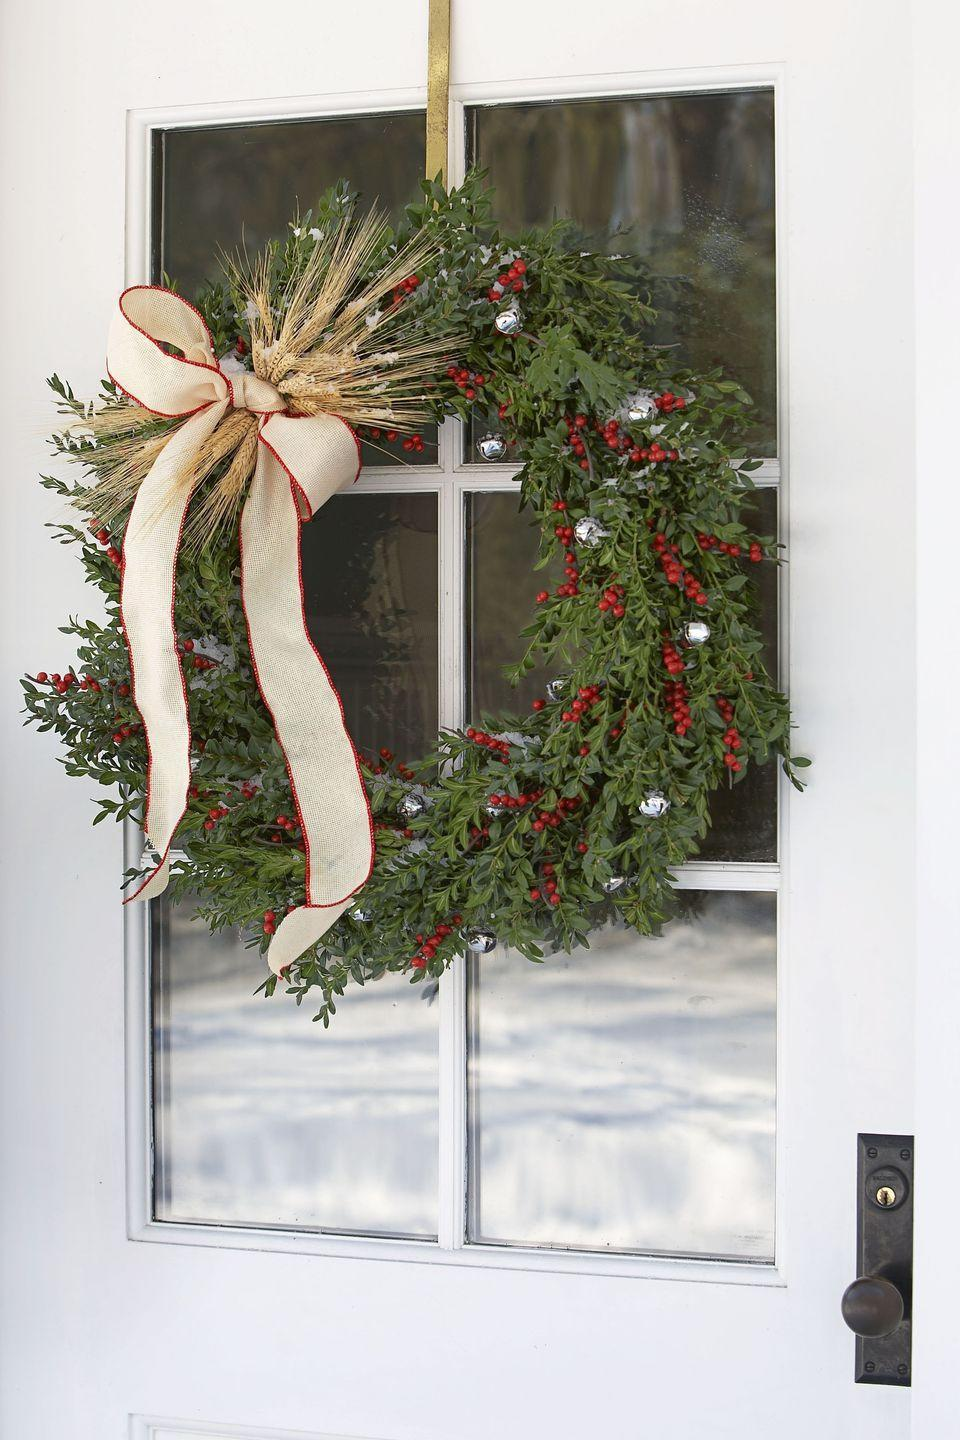 "<p>Steal some <a href=""https://www.goodhousekeeping.com/holidays/christmas-ideas/g469/scandinavian-christmas-decorations/"" rel=""nofollow noopener"" target=""_blank"" data-ylk=""slk:Scandinavian style"" class=""link rapid-noclick-resp"">Scandinavian style</a> for a Nordic Noël. Wheat stalks and winter berries brighten up a plain wreath, and silver bells add a little jingle. </p>"